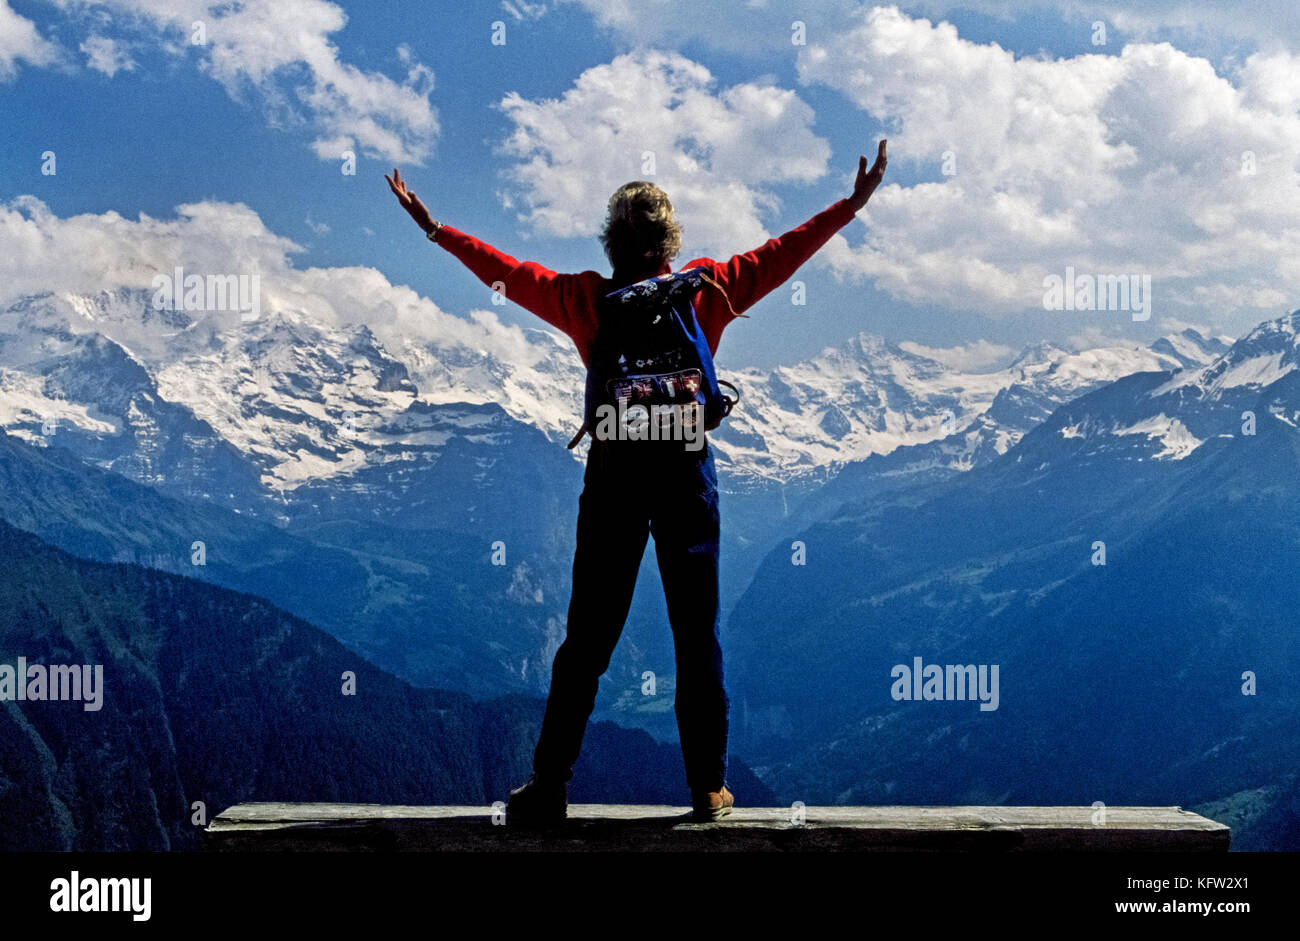 A female visitor on a day-hike raises her arms in exhilaration at the view of the Swiss Alps in the Bernese Oberland, - Stock Image